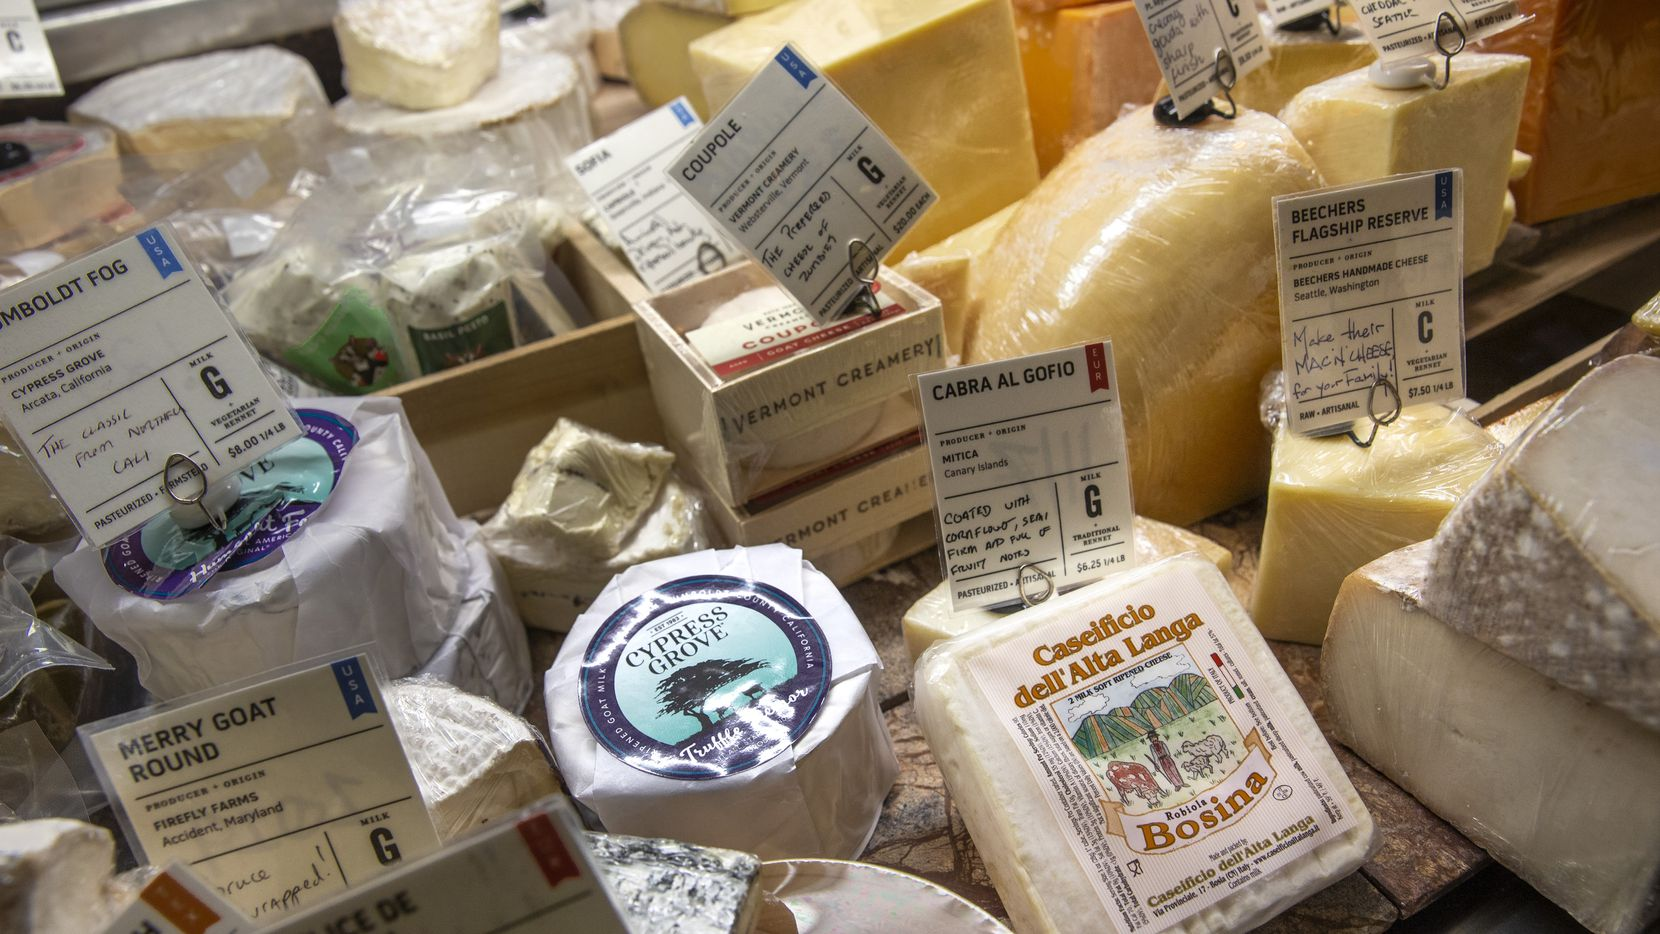 Caseificio Dell'Alta Langa Robiola Bosina (right) is among the European cheeses that will increase in price at Scardello Artisan Cheese in Dallas due to new tariffs.